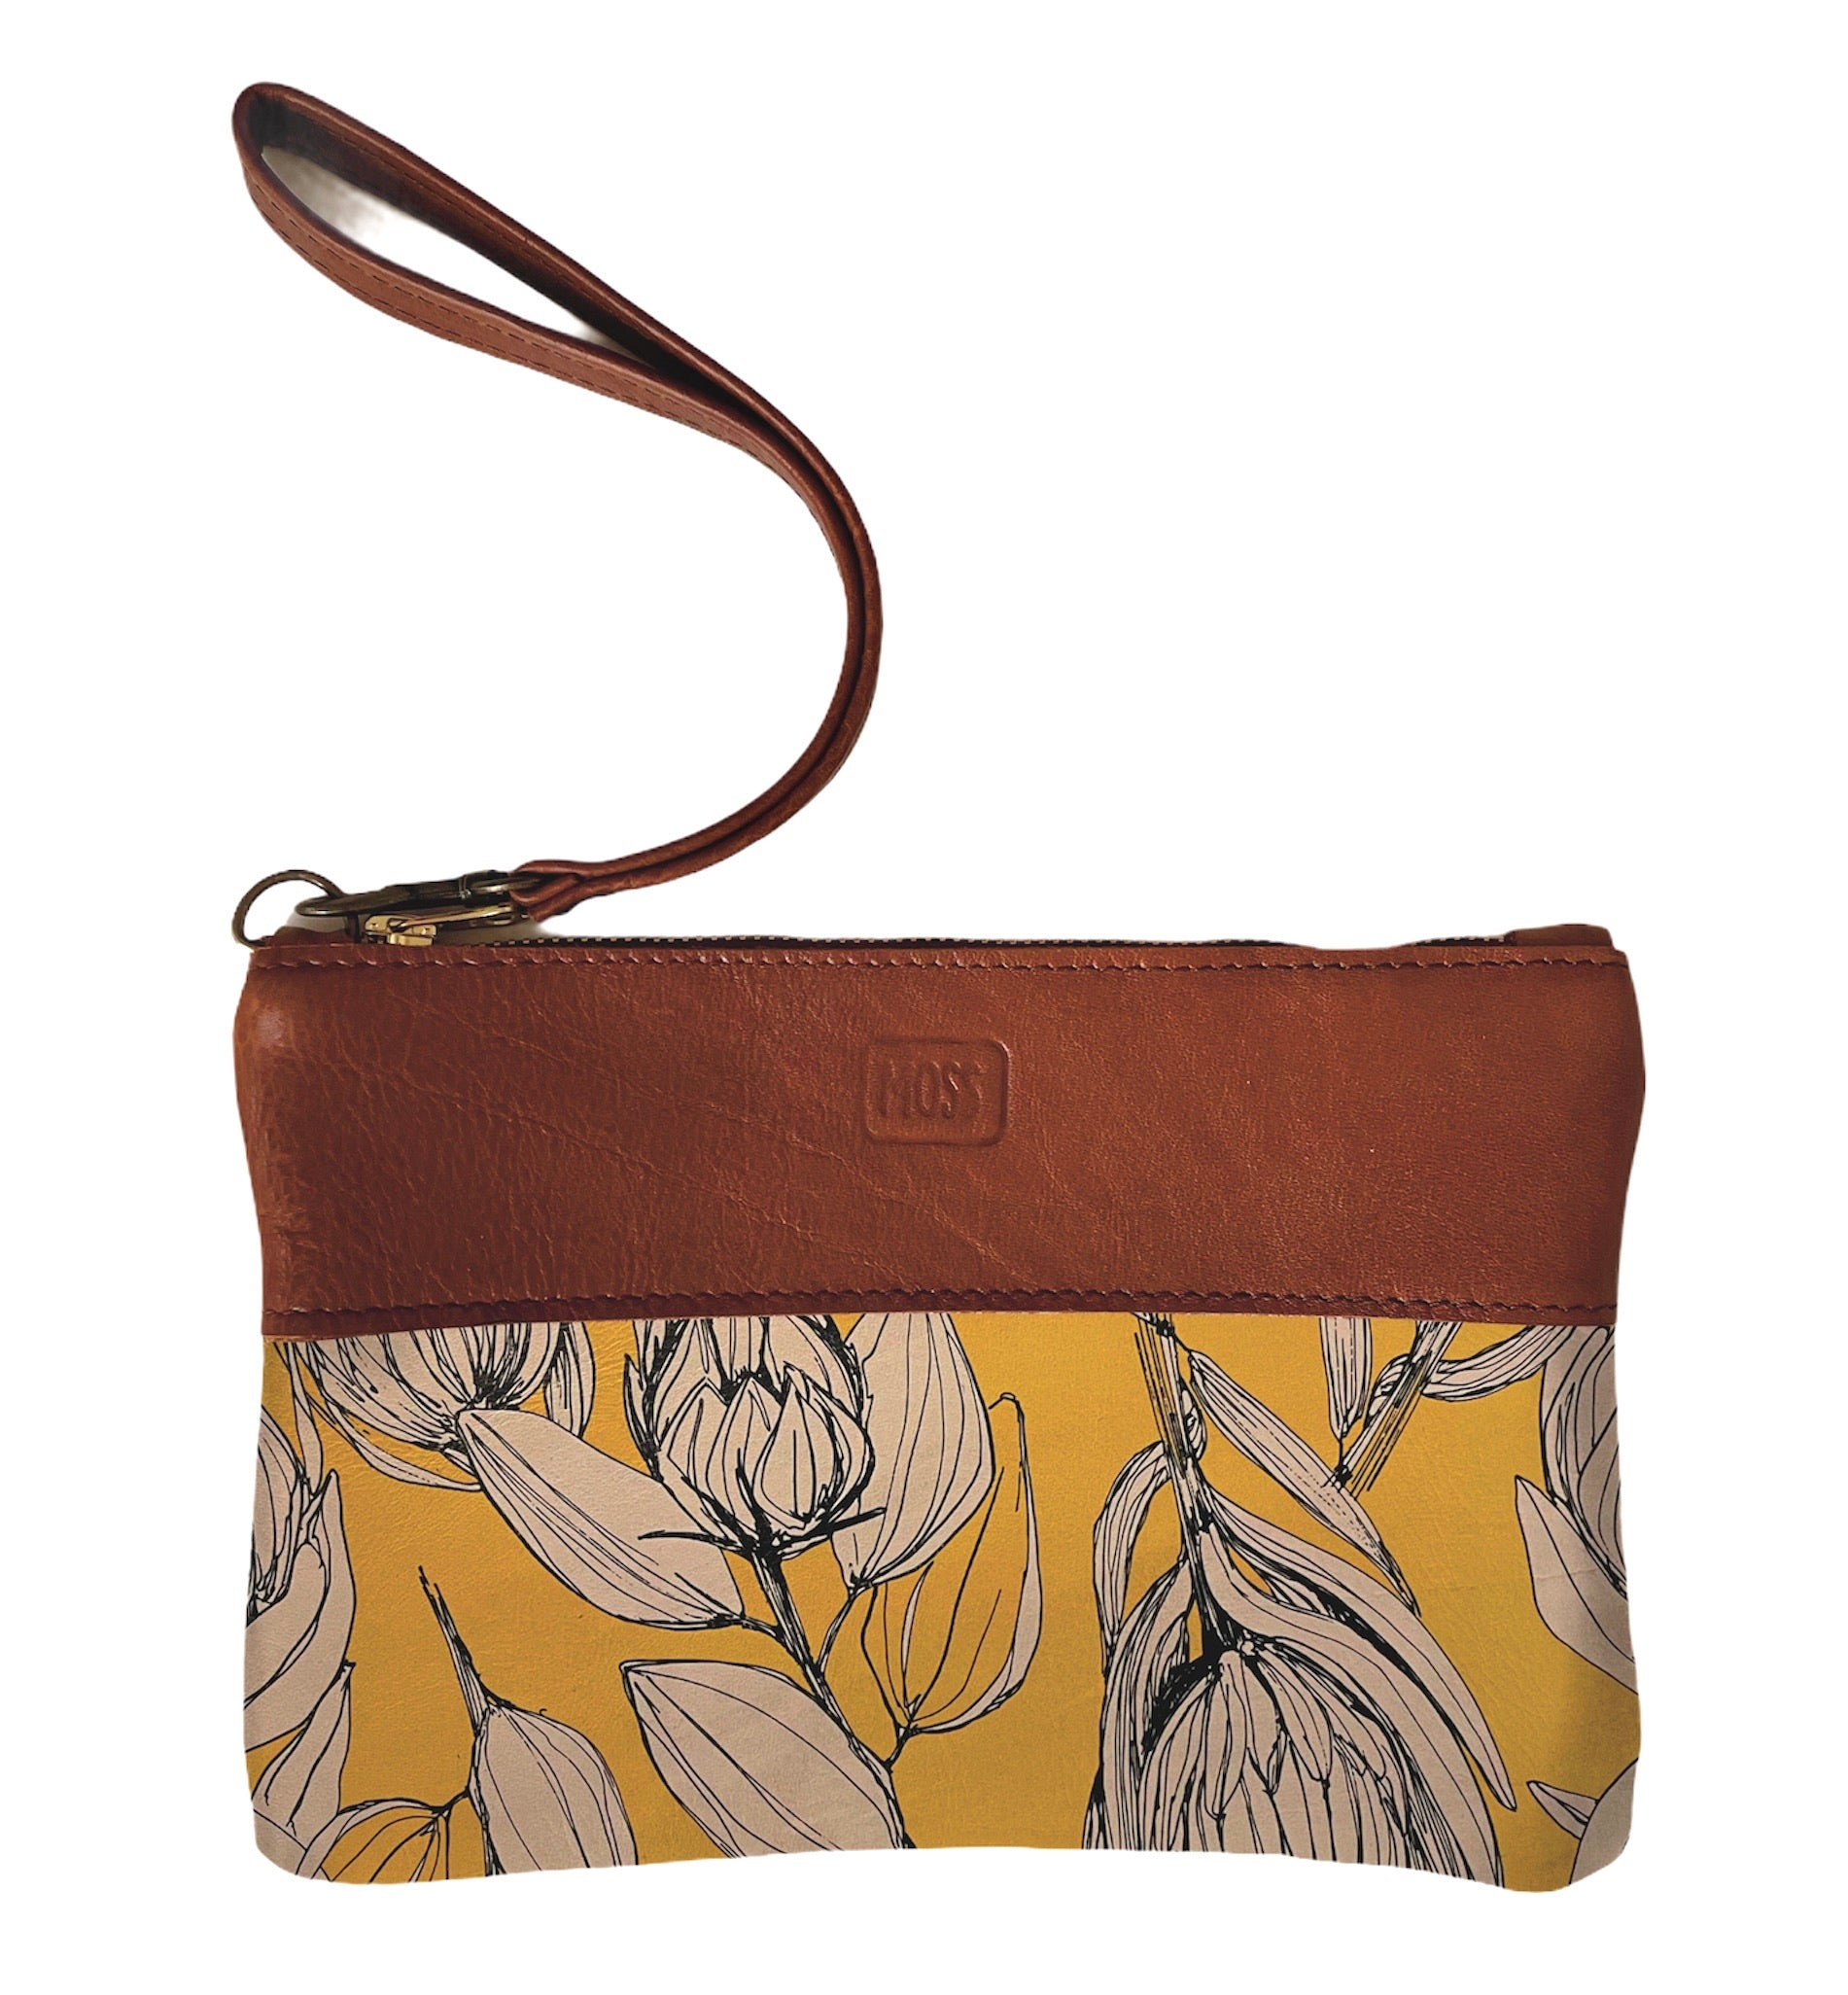 Clutch bag Protea sketch on yellow